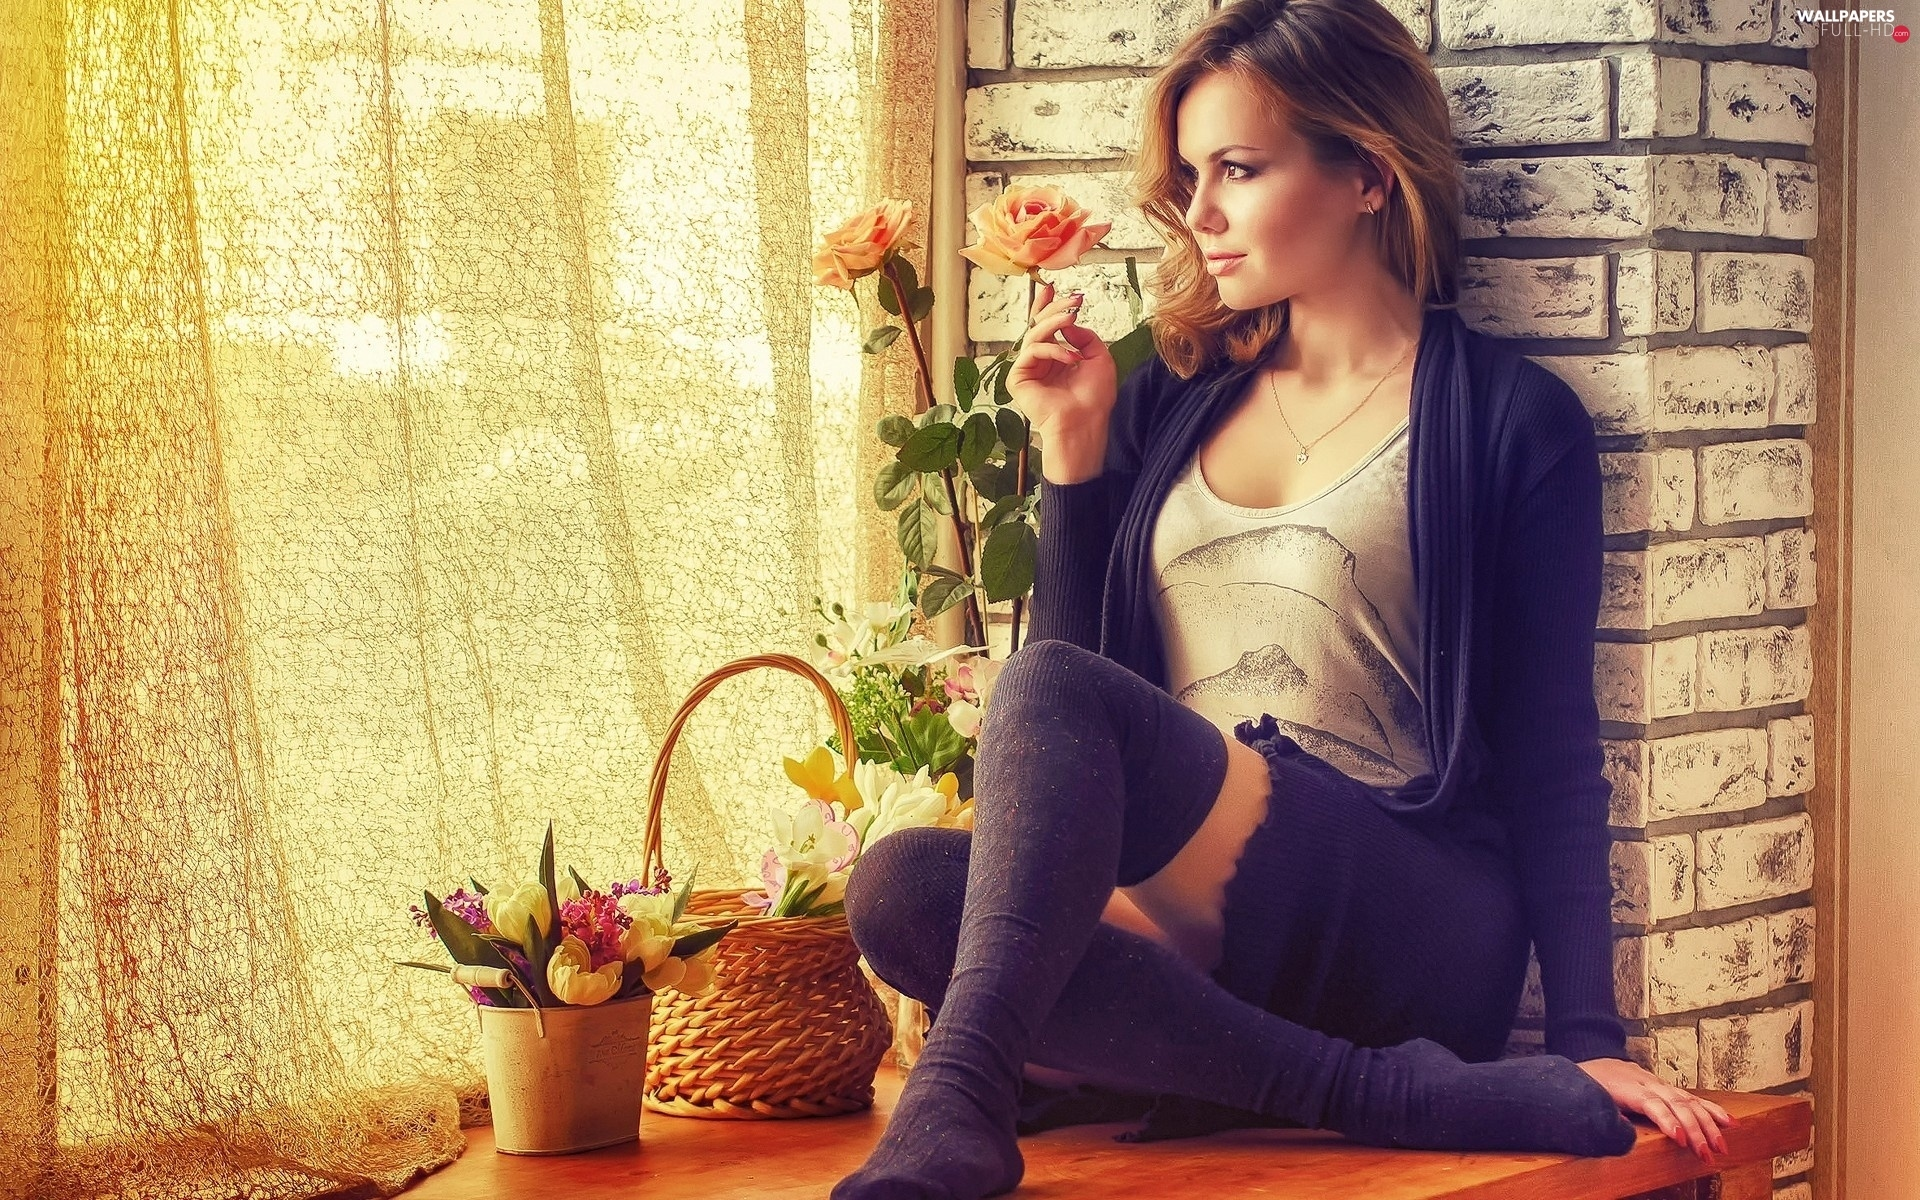 basket, Window, staring, Flowers, girl